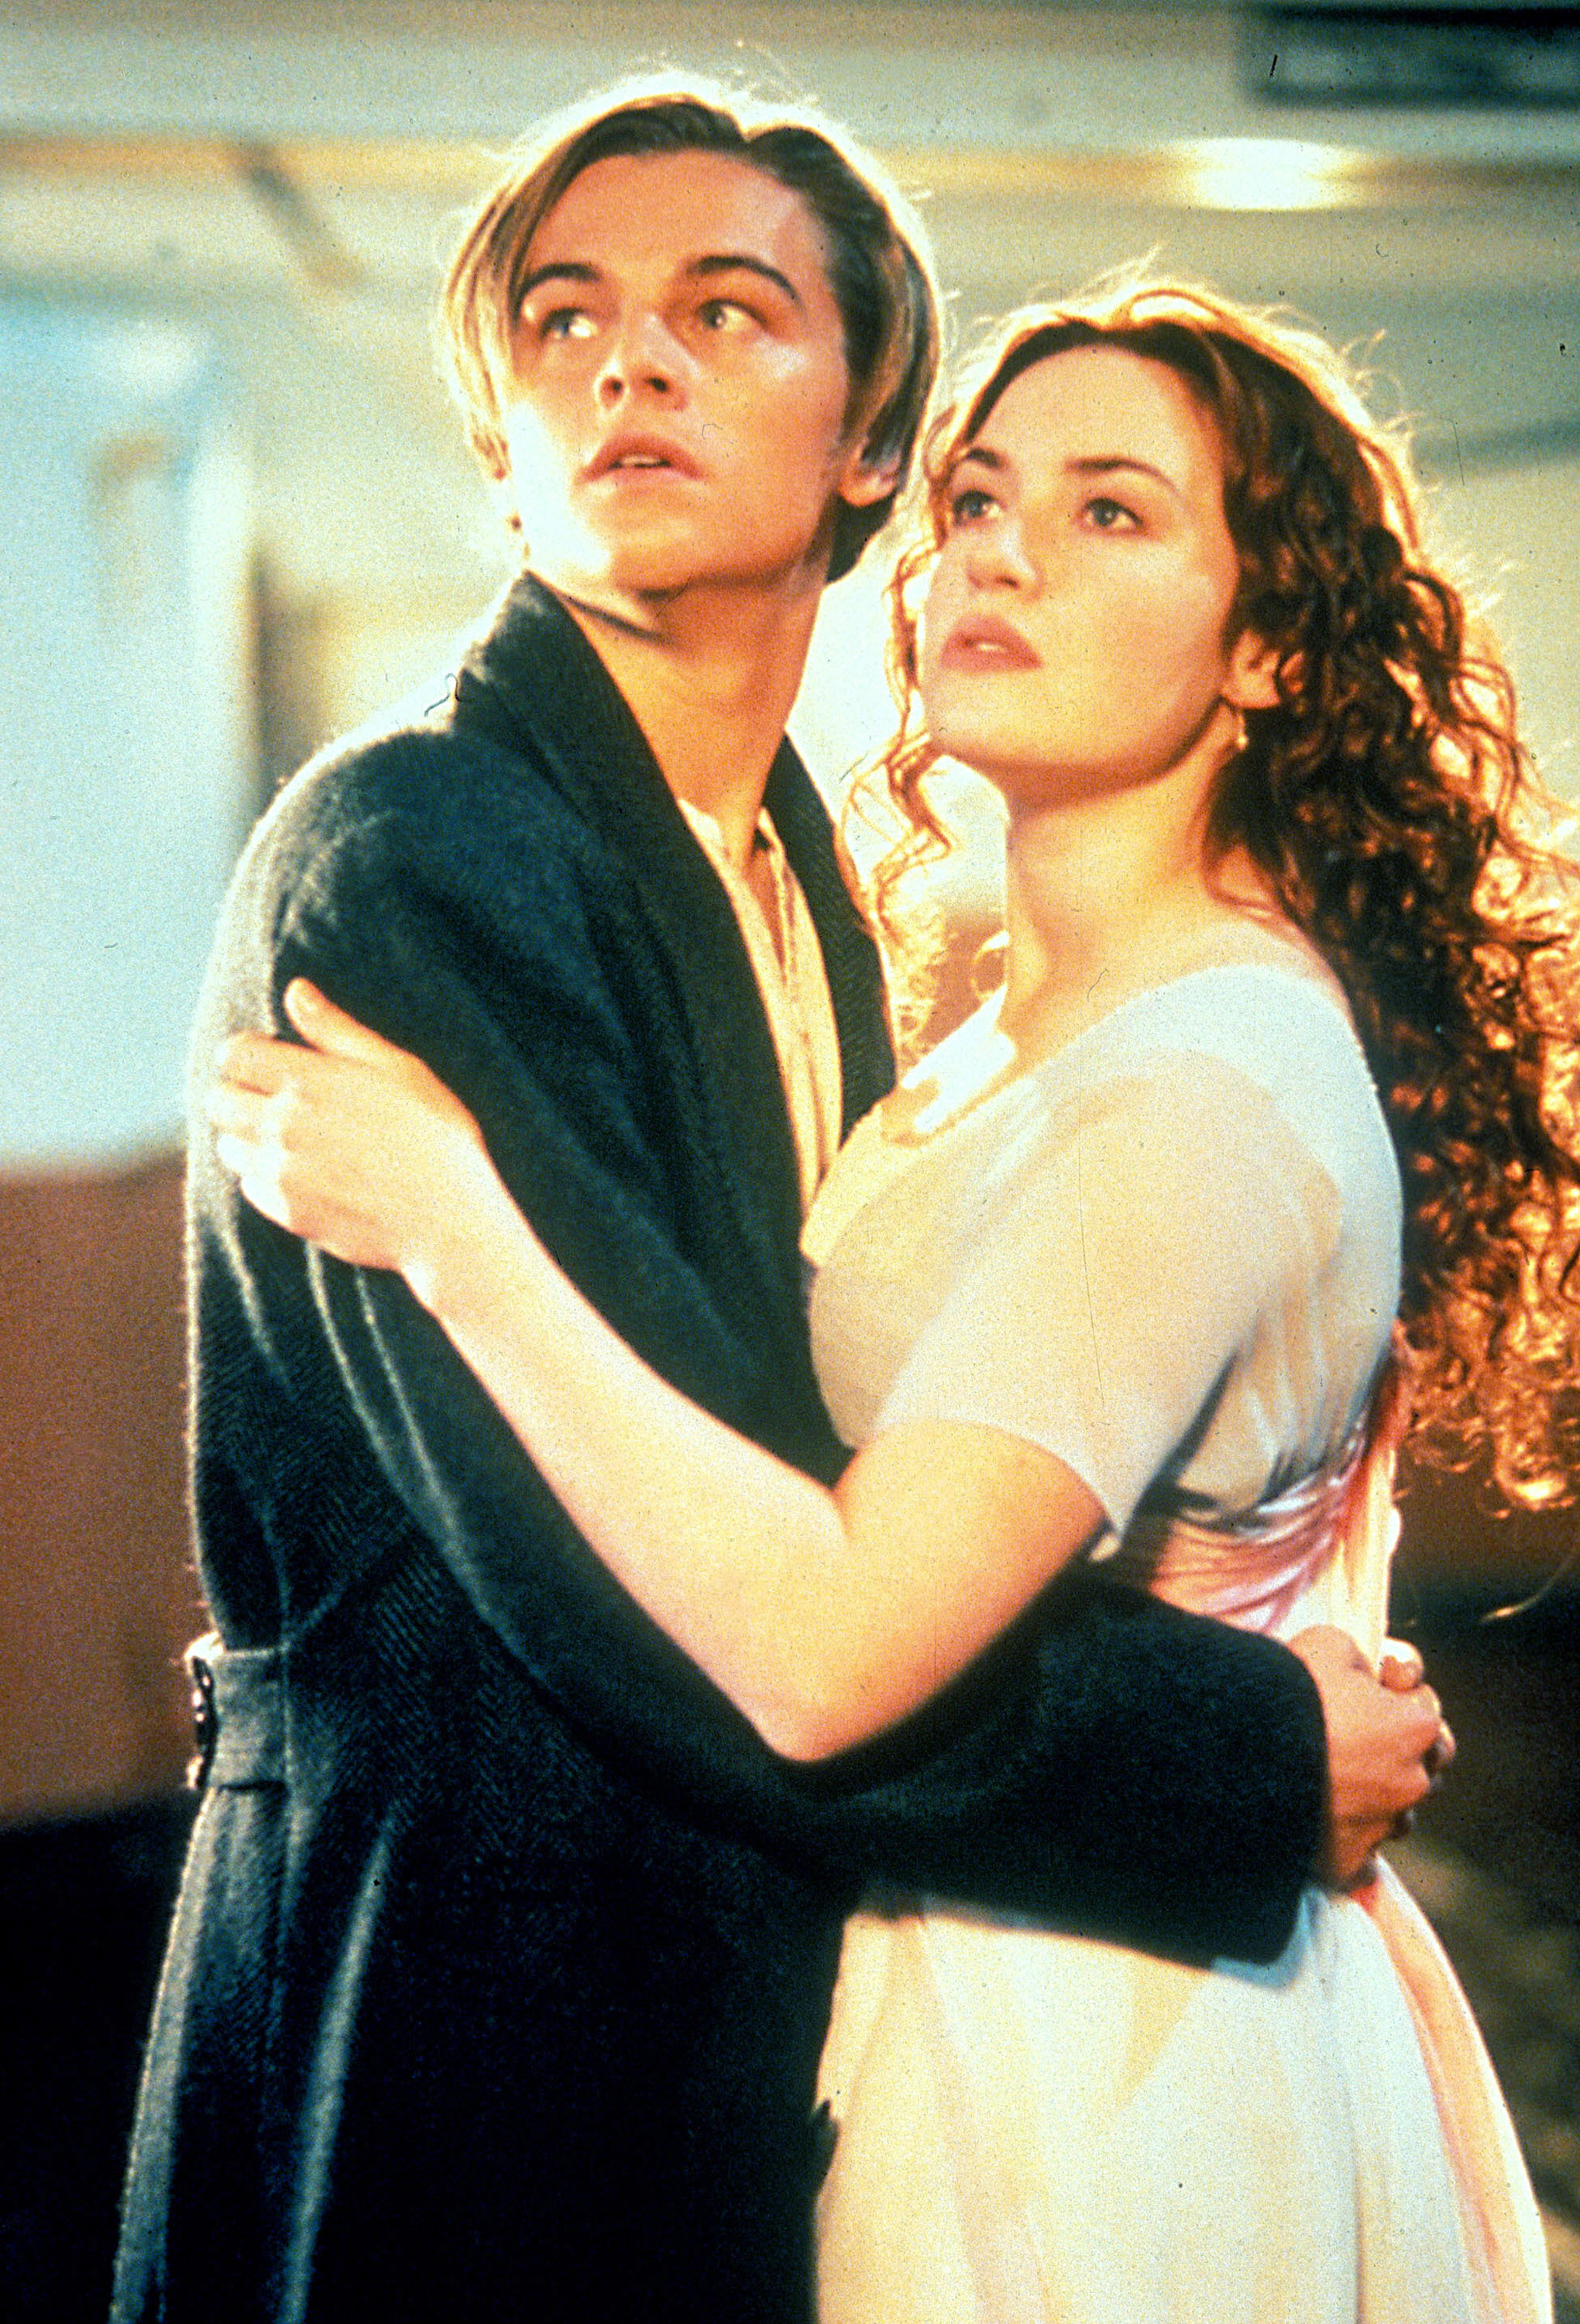 Leonardo DiCaprio and Kate Winslet                  as 'Jack Dawson' and 'Rose DeWitt Bukater' in the film 'Titanic'                  USA - 14.12.97                                    Featuring: Leonardo DiCaprio and Kate Winslet                  Where: United States                  When: 14 Dec 1997                  Credit: WENN.com                                    **WENN does not claim any ownership including but not limited to Copyright or License in the attached material. Fees charged by WENN are for WENN's services only, and do not, nor are they intended to, convey to the user any ownership of Copyright or License in the material. By publishing this material you expressly agree to indemnify and to hold WENN and its directors, shareholders and employees harmless from any loss, claims, damages, demands, expenses (including legal fees), or any causes of action or allegation against WENN arising out of or connected in any way with publication of the material.**